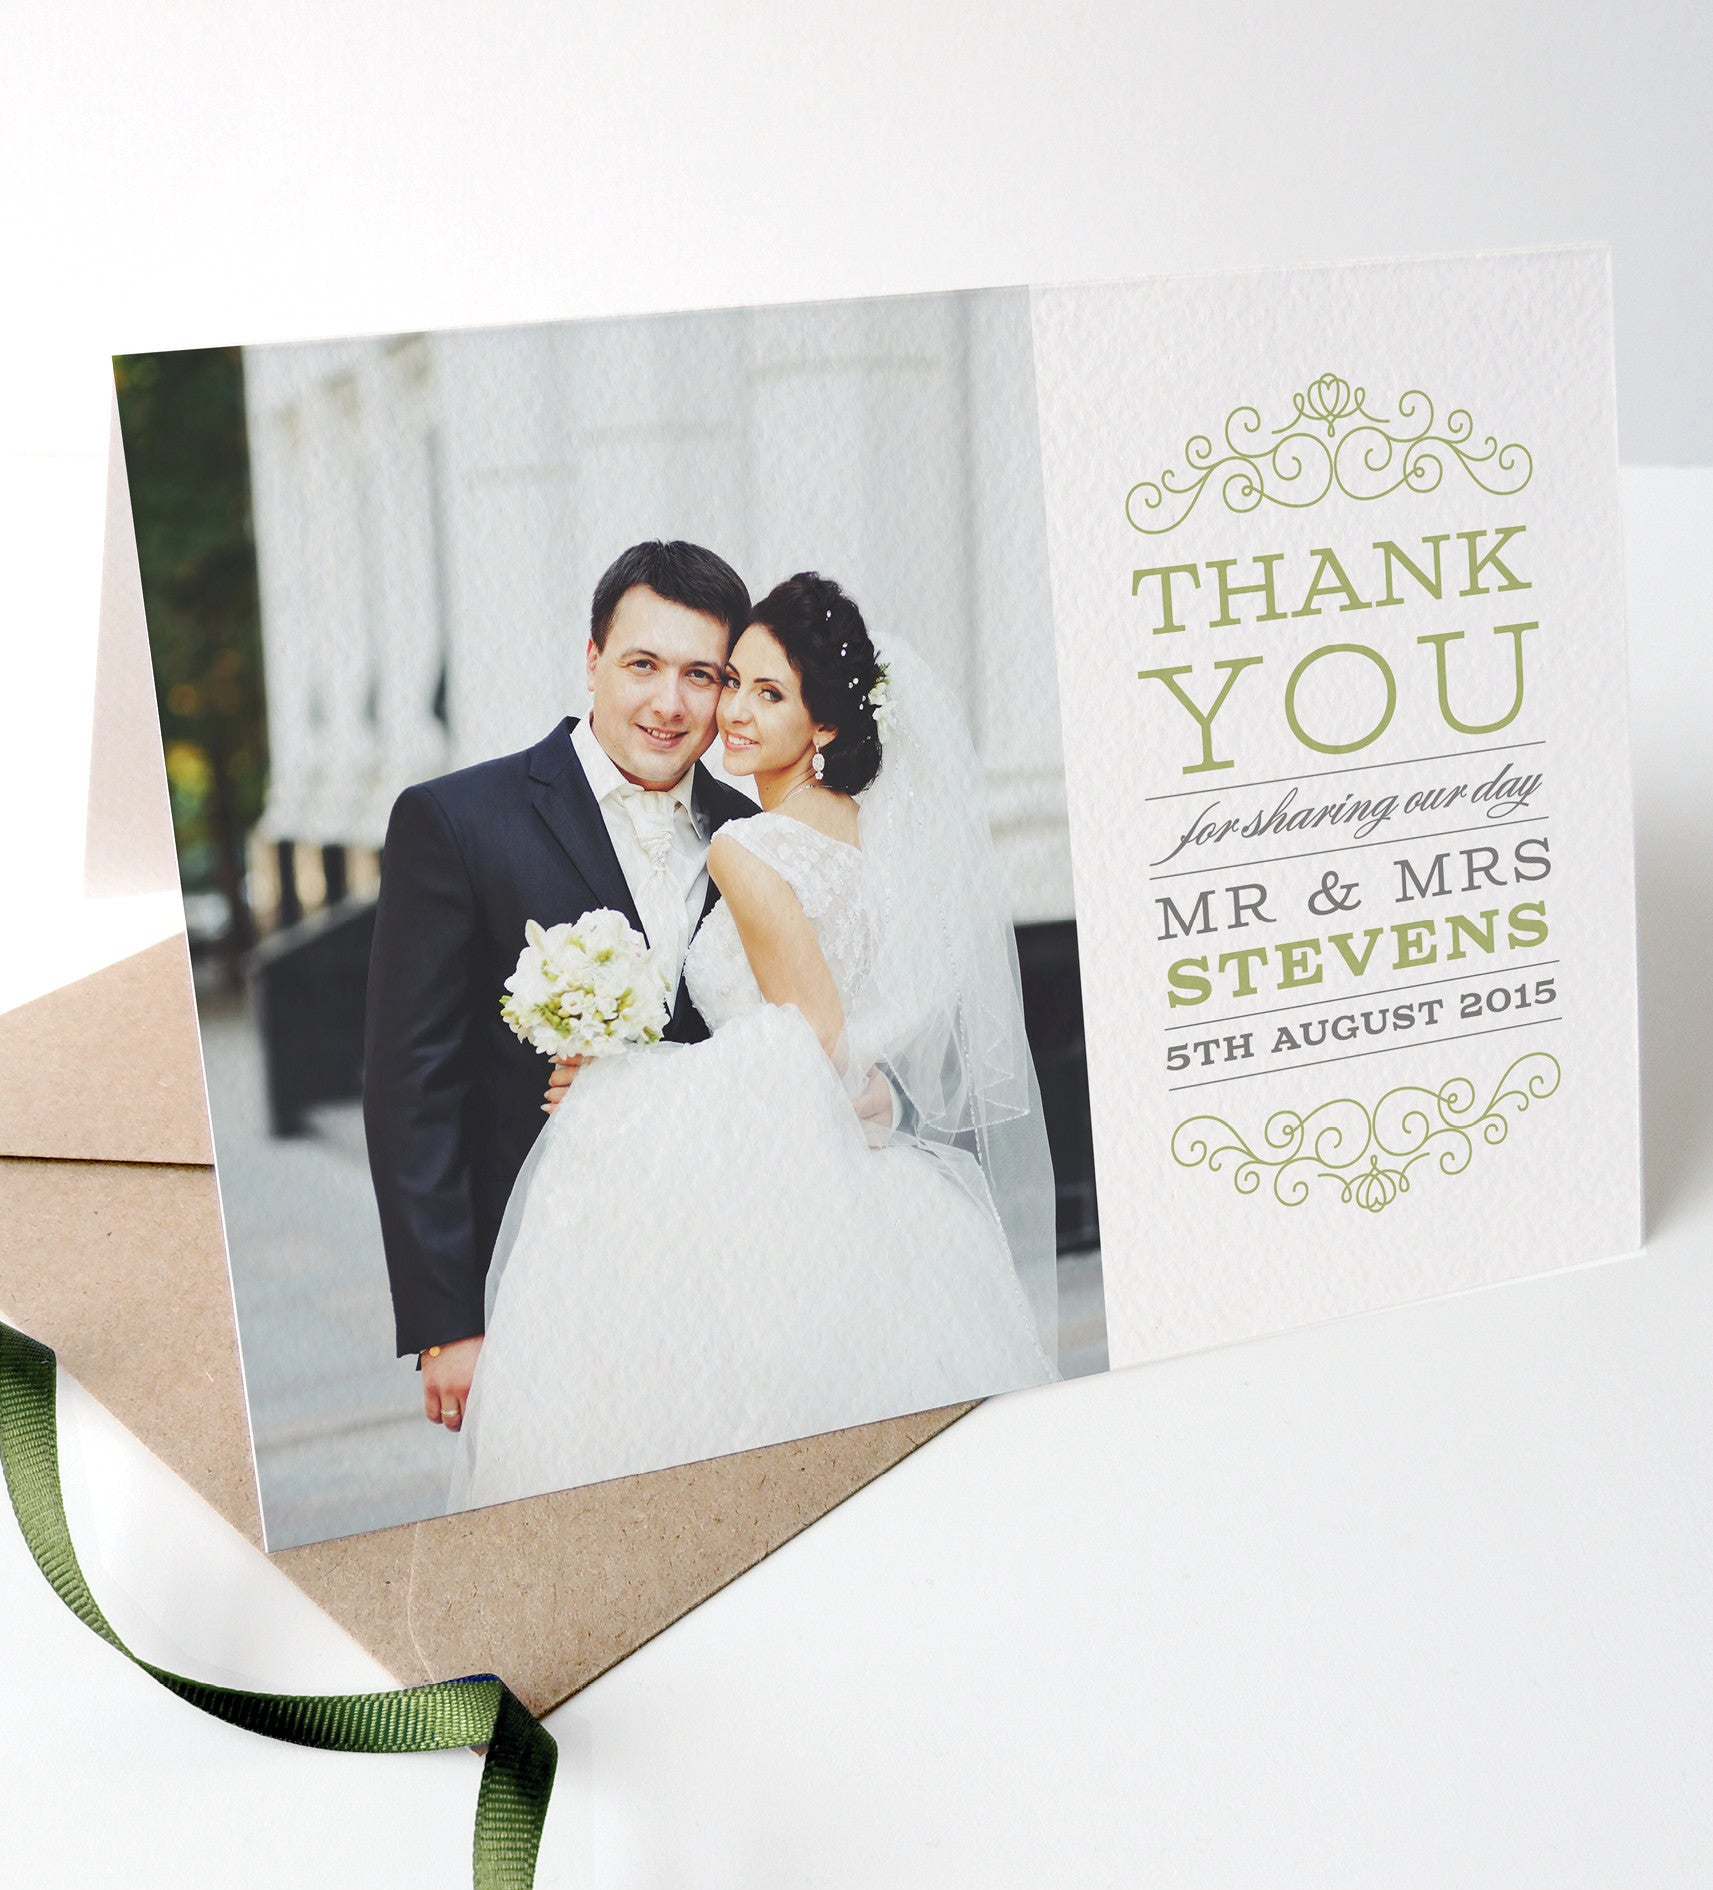 Eva Wedding Photo Thank You Cards - Project Pretty  - 1